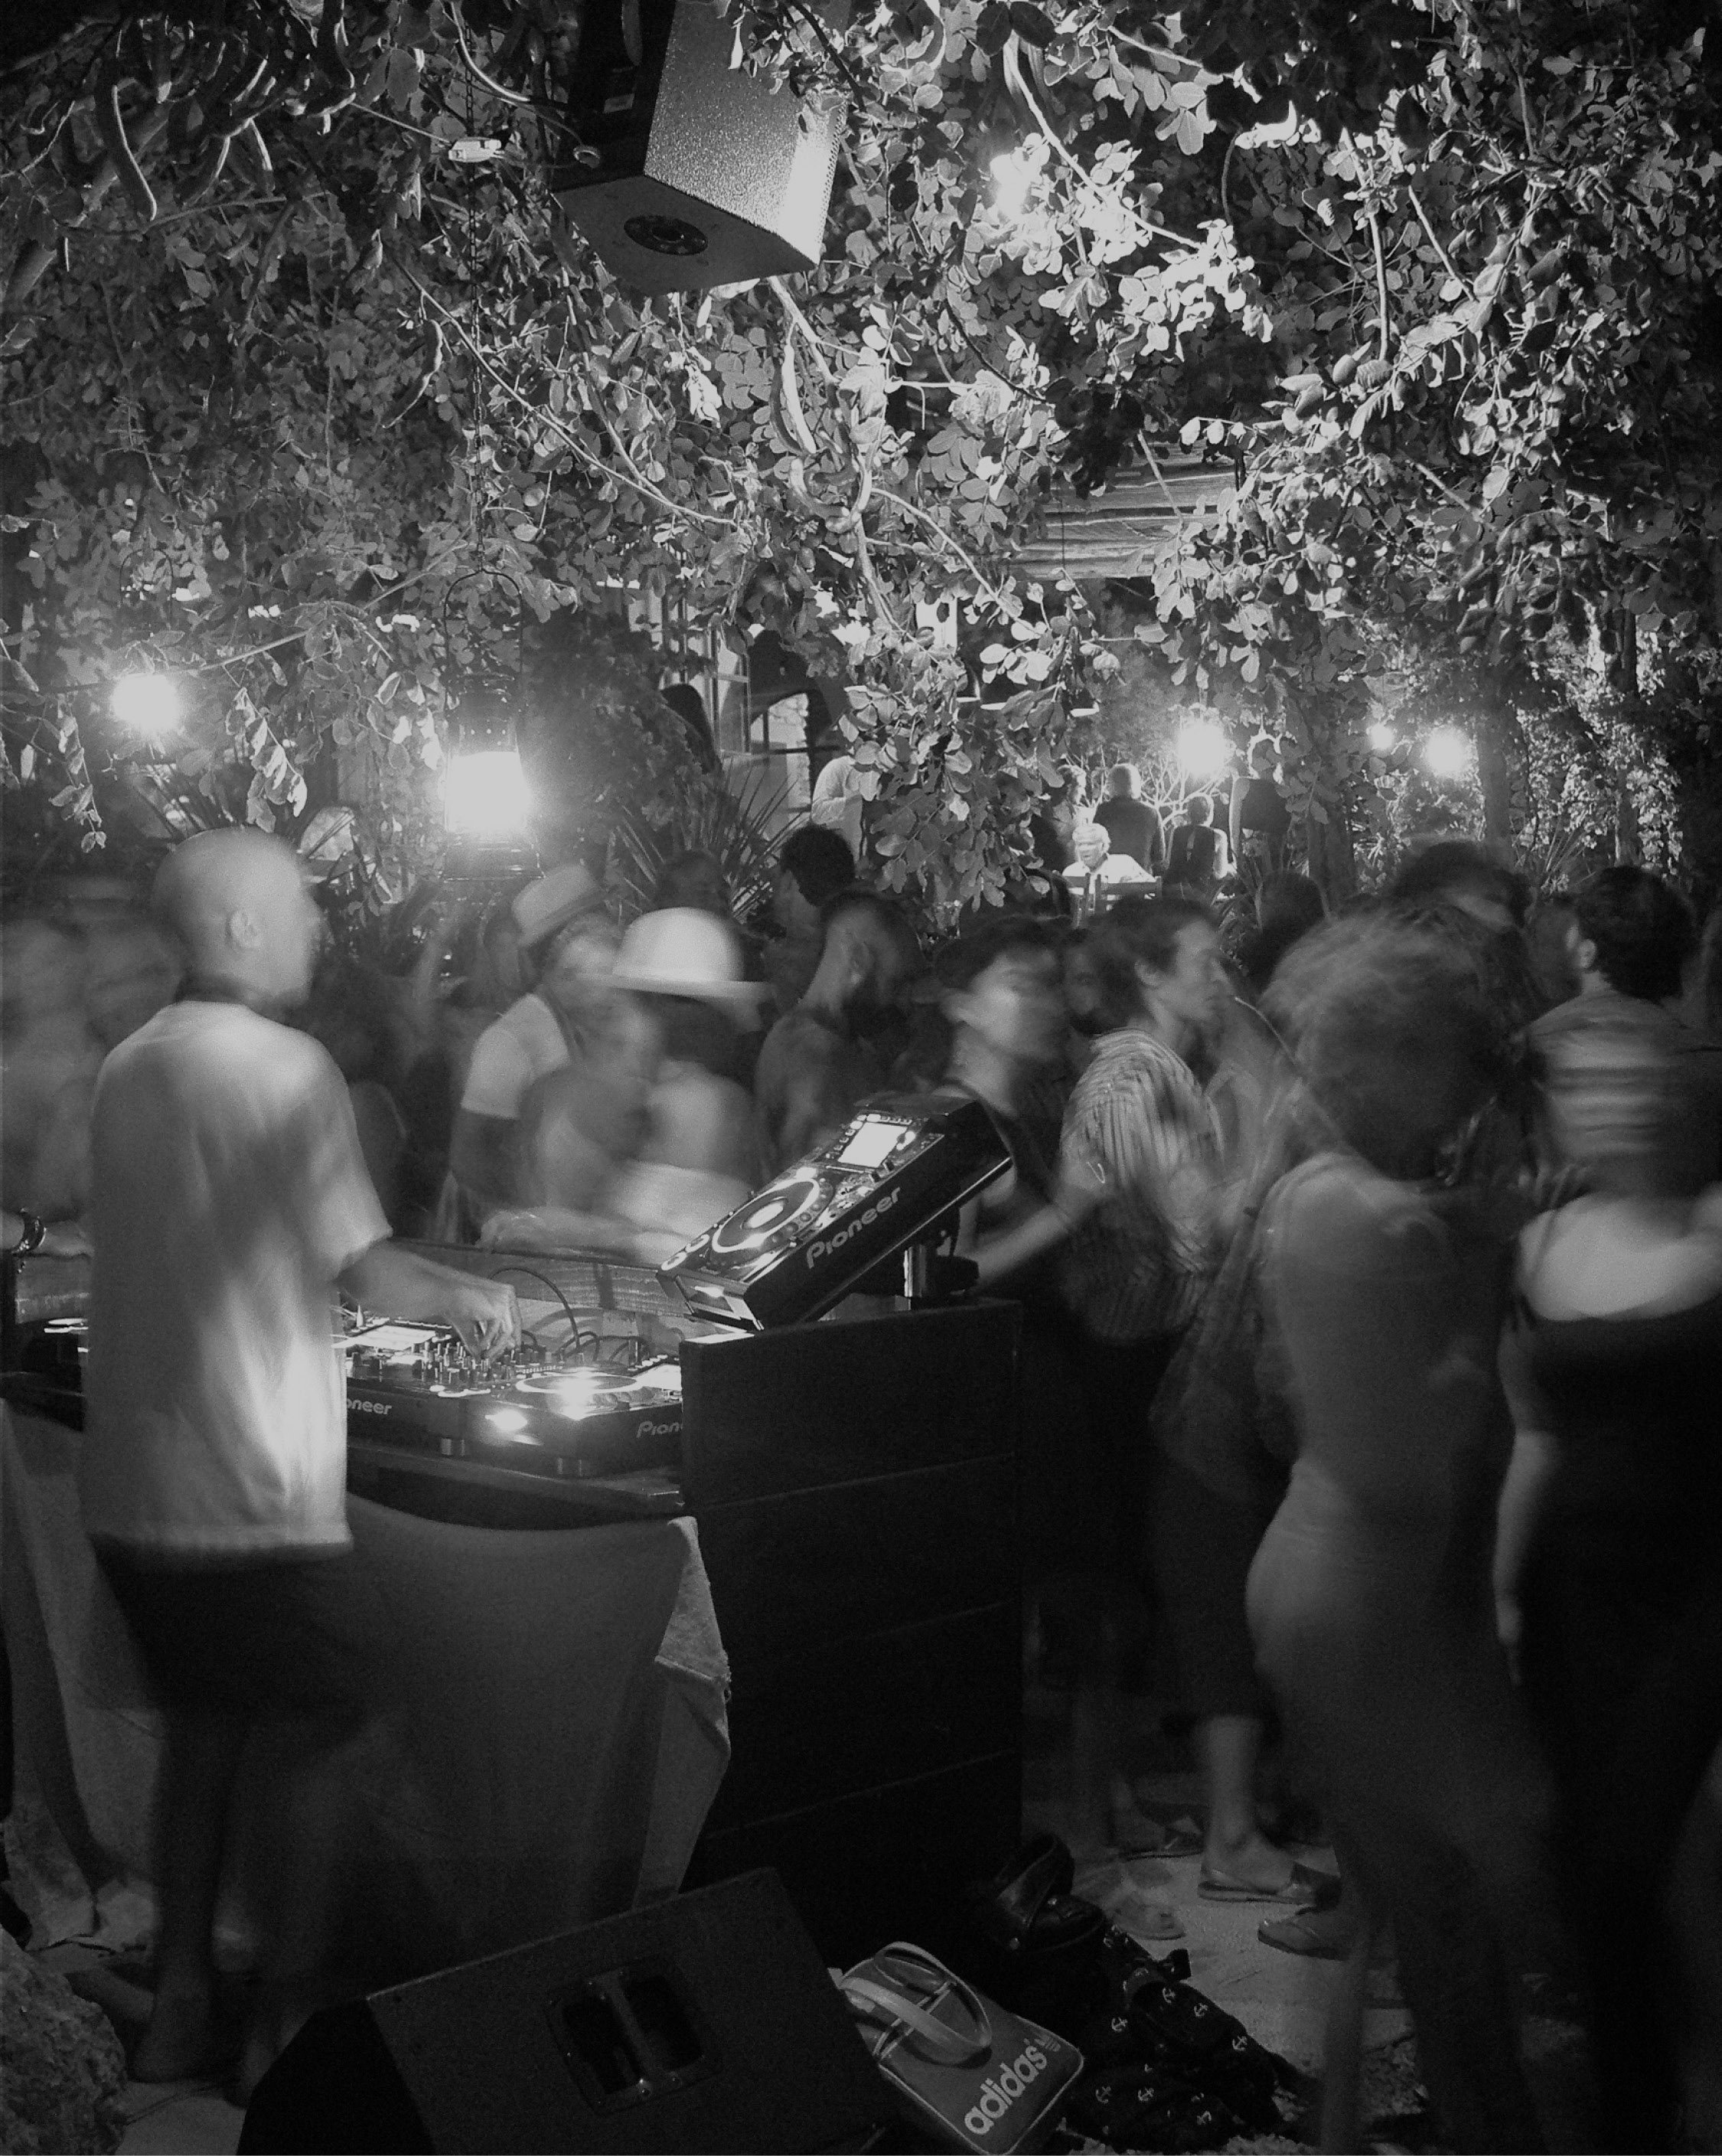 A music ritual at La Granja Ibiza, focused on electronic and world music